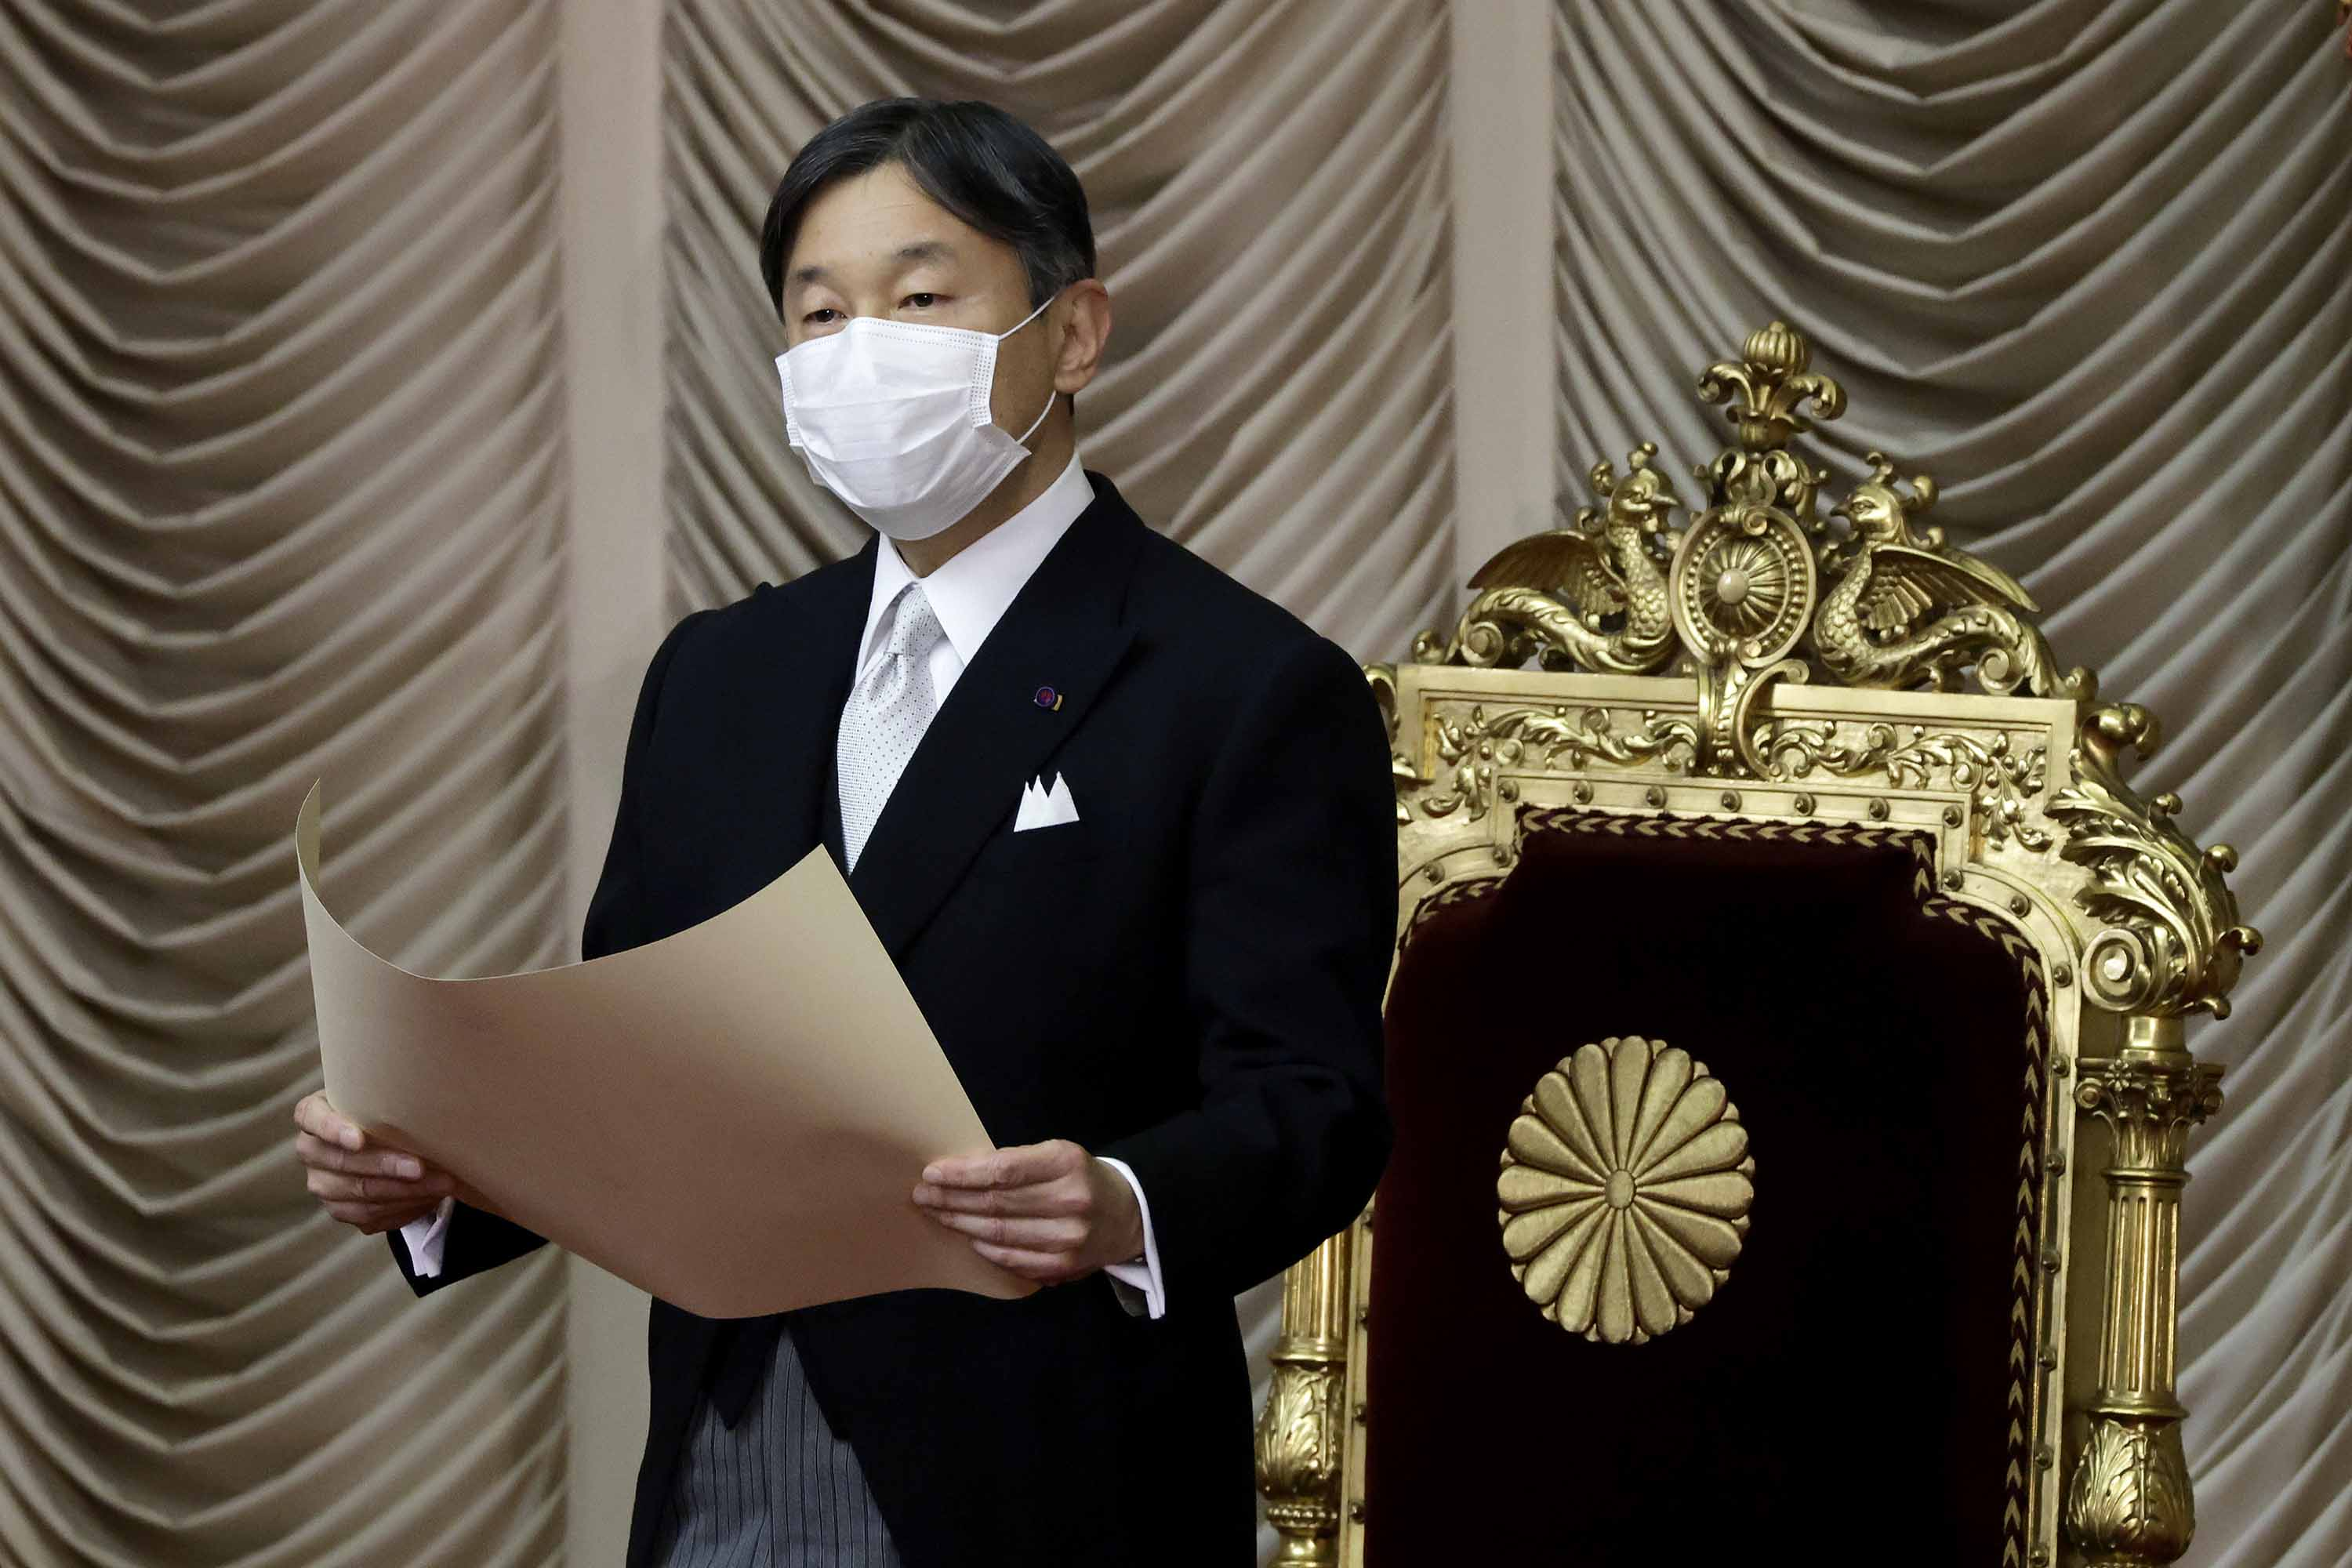 Japan's Emperor Naruhito is pictured at the opening of a session at the upper house of parliament in Tokyo, Japan, on January 18.